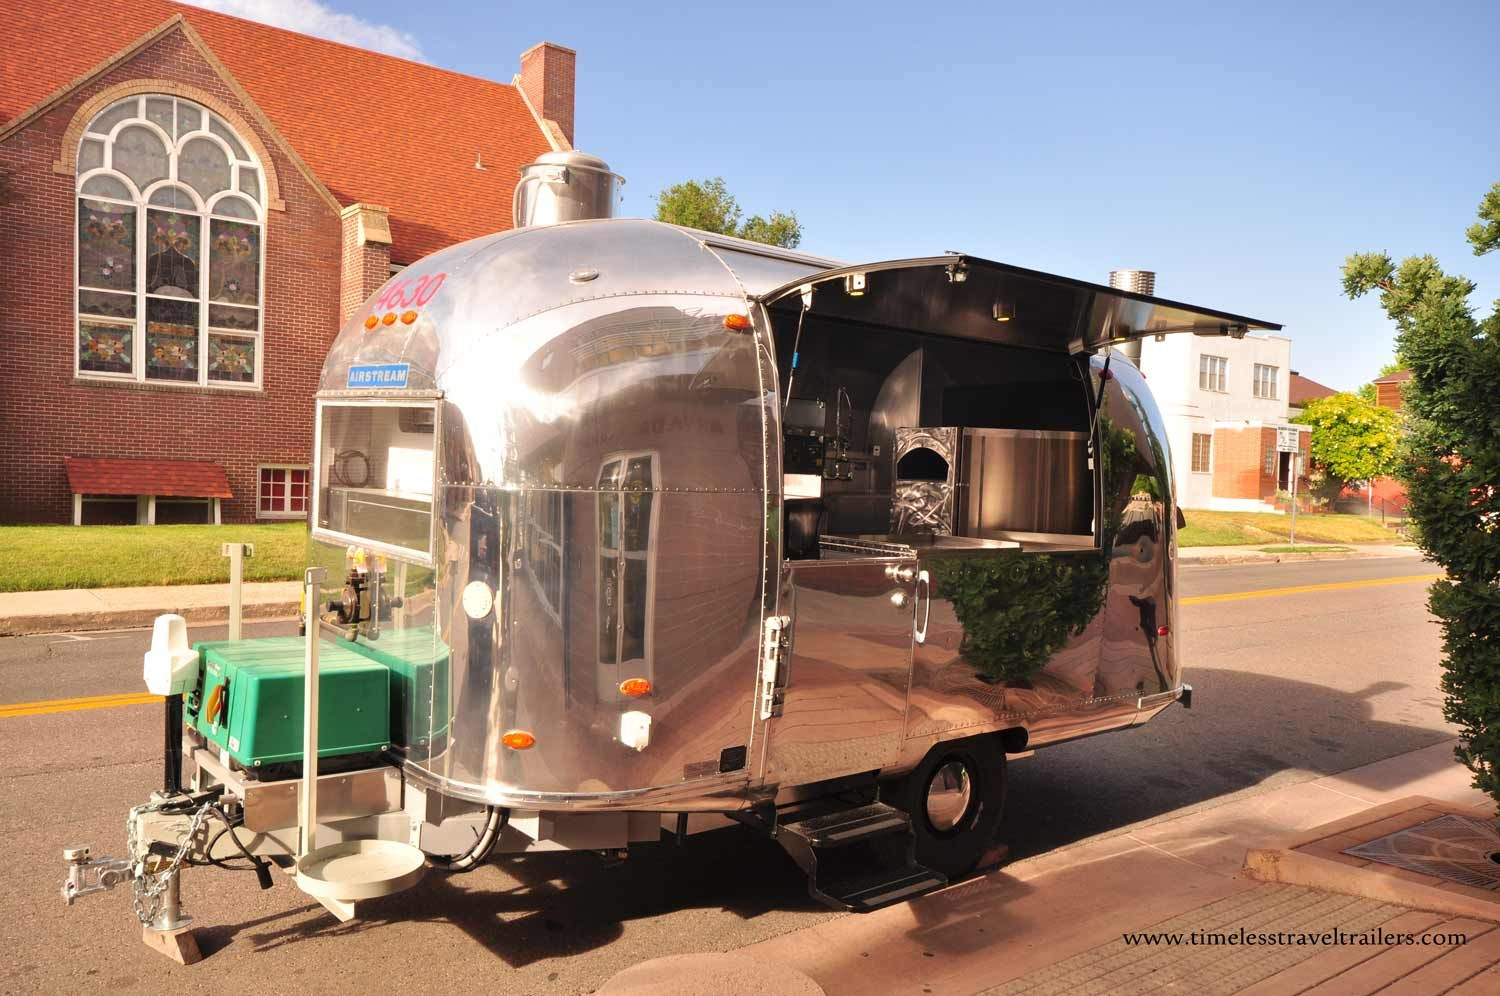 Timeless Travel Trailers Airstream's most experienced